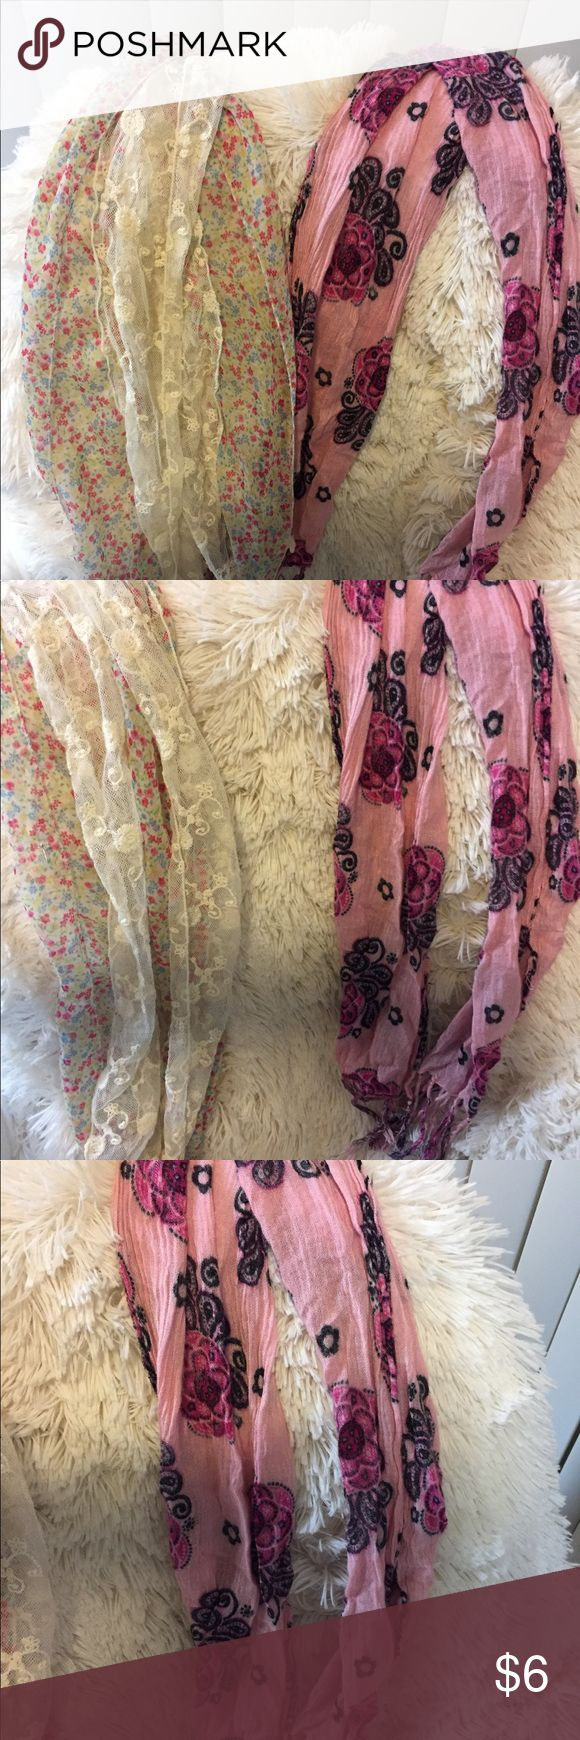 Scarves Pink and cream scarves .  Very trendy and pretty Accessories Scarves & Wraps